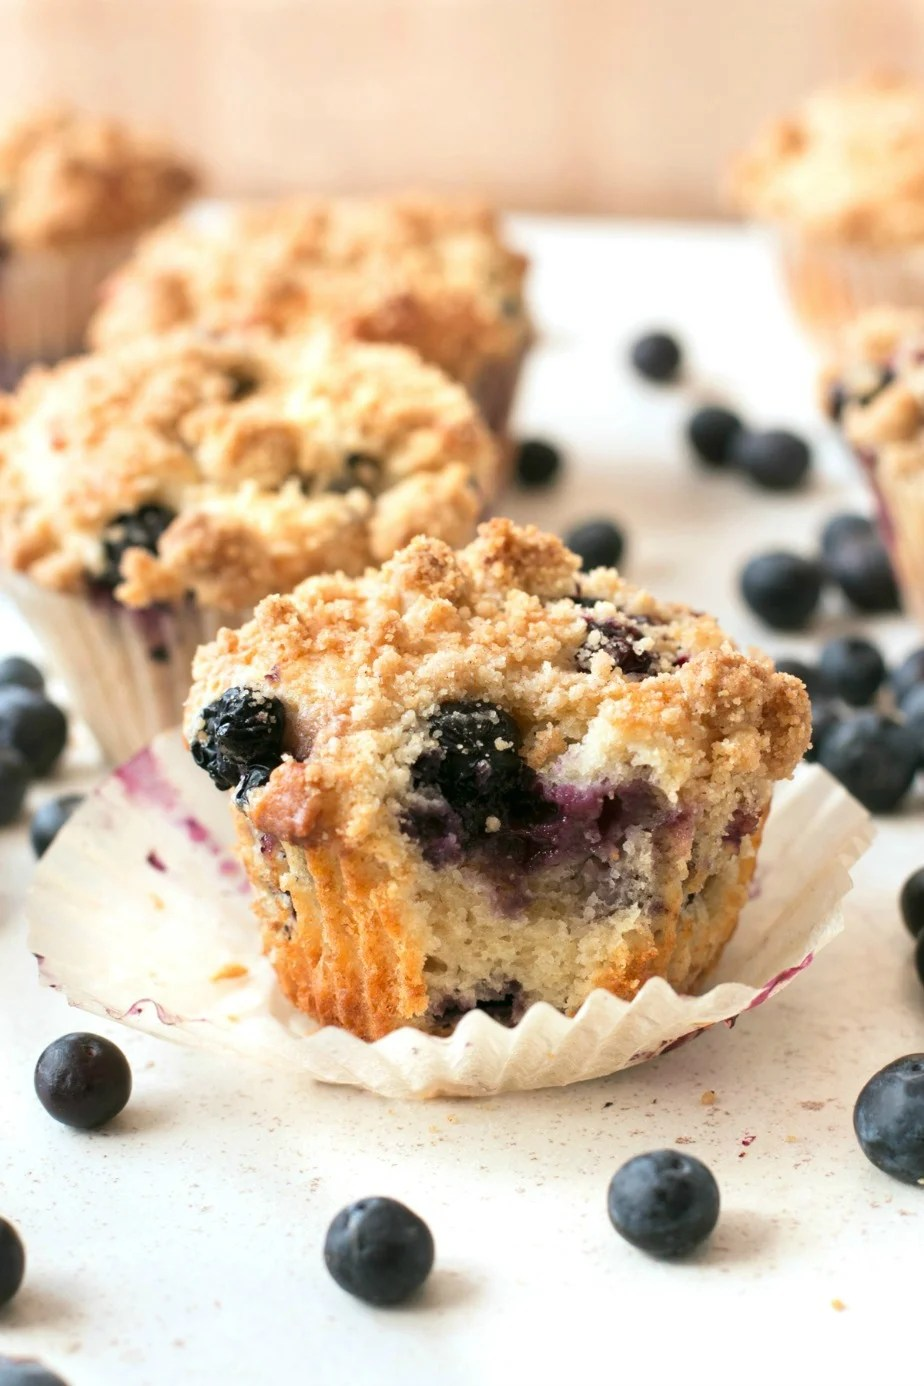 Blueberry crumb muffins sitting on a white surface with one having a bite taken from it